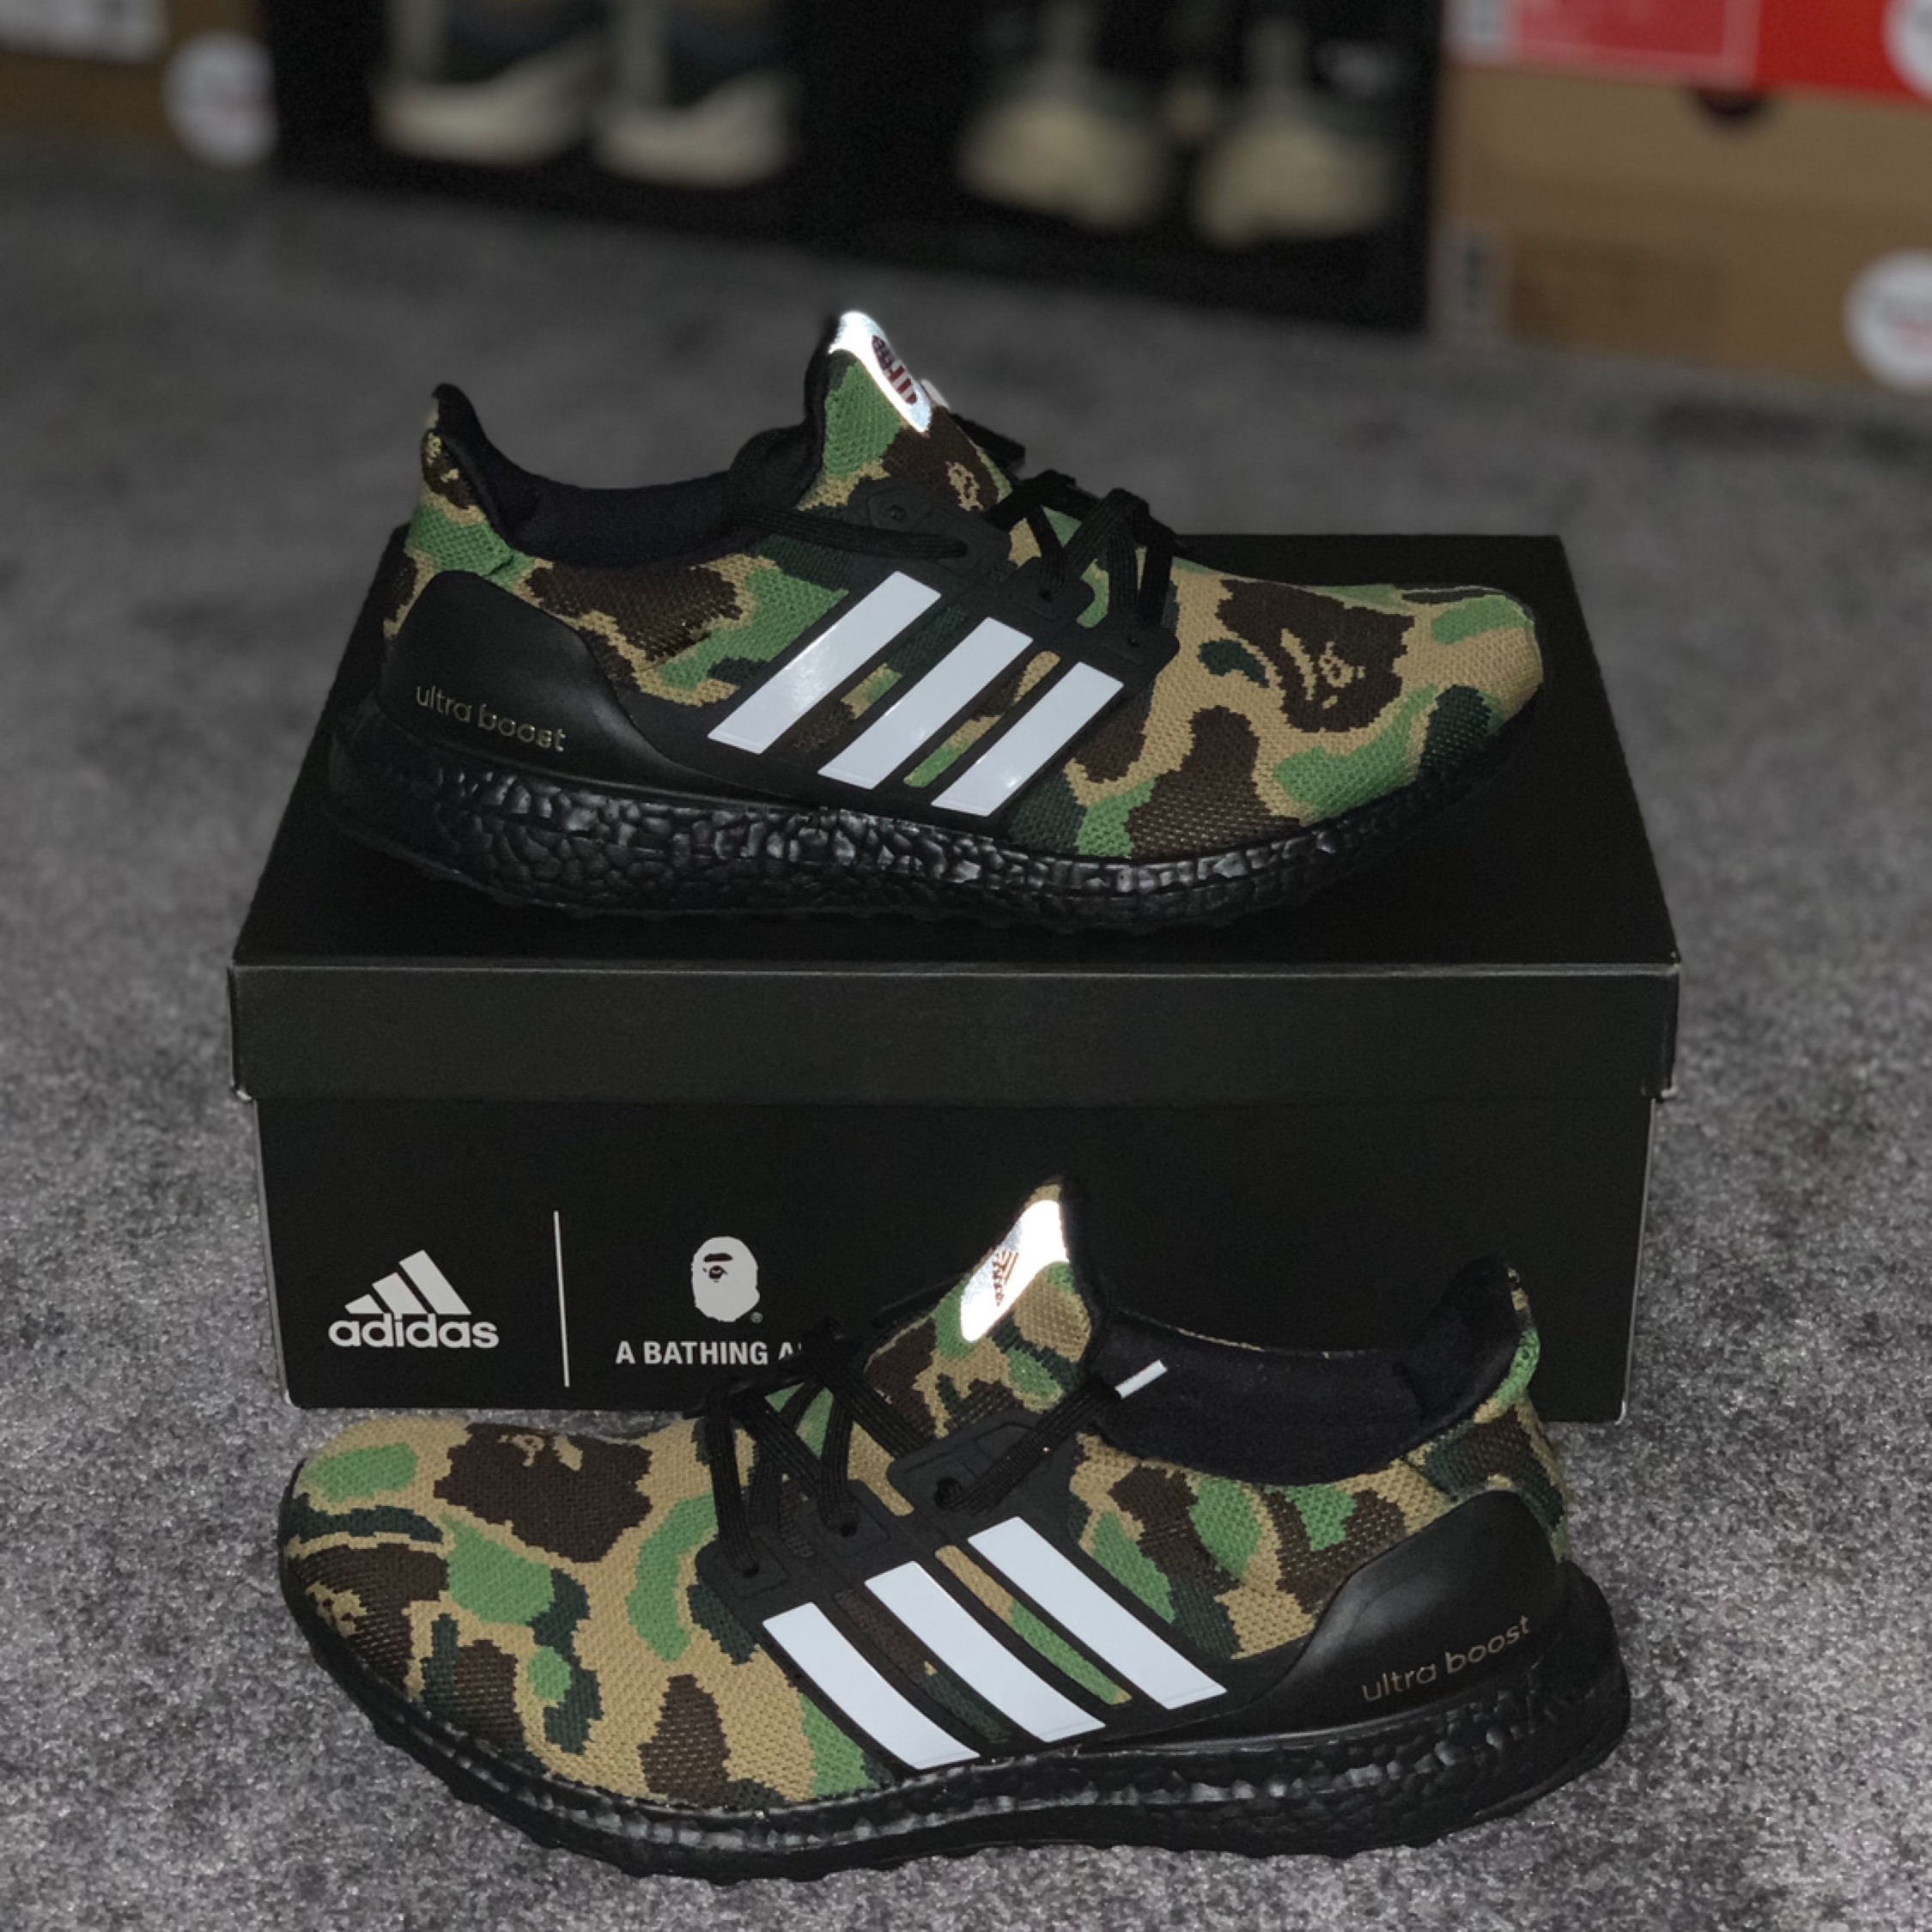 be92c0a079850 Bape X Adidas Ultra Boost 4.0  Green Camo